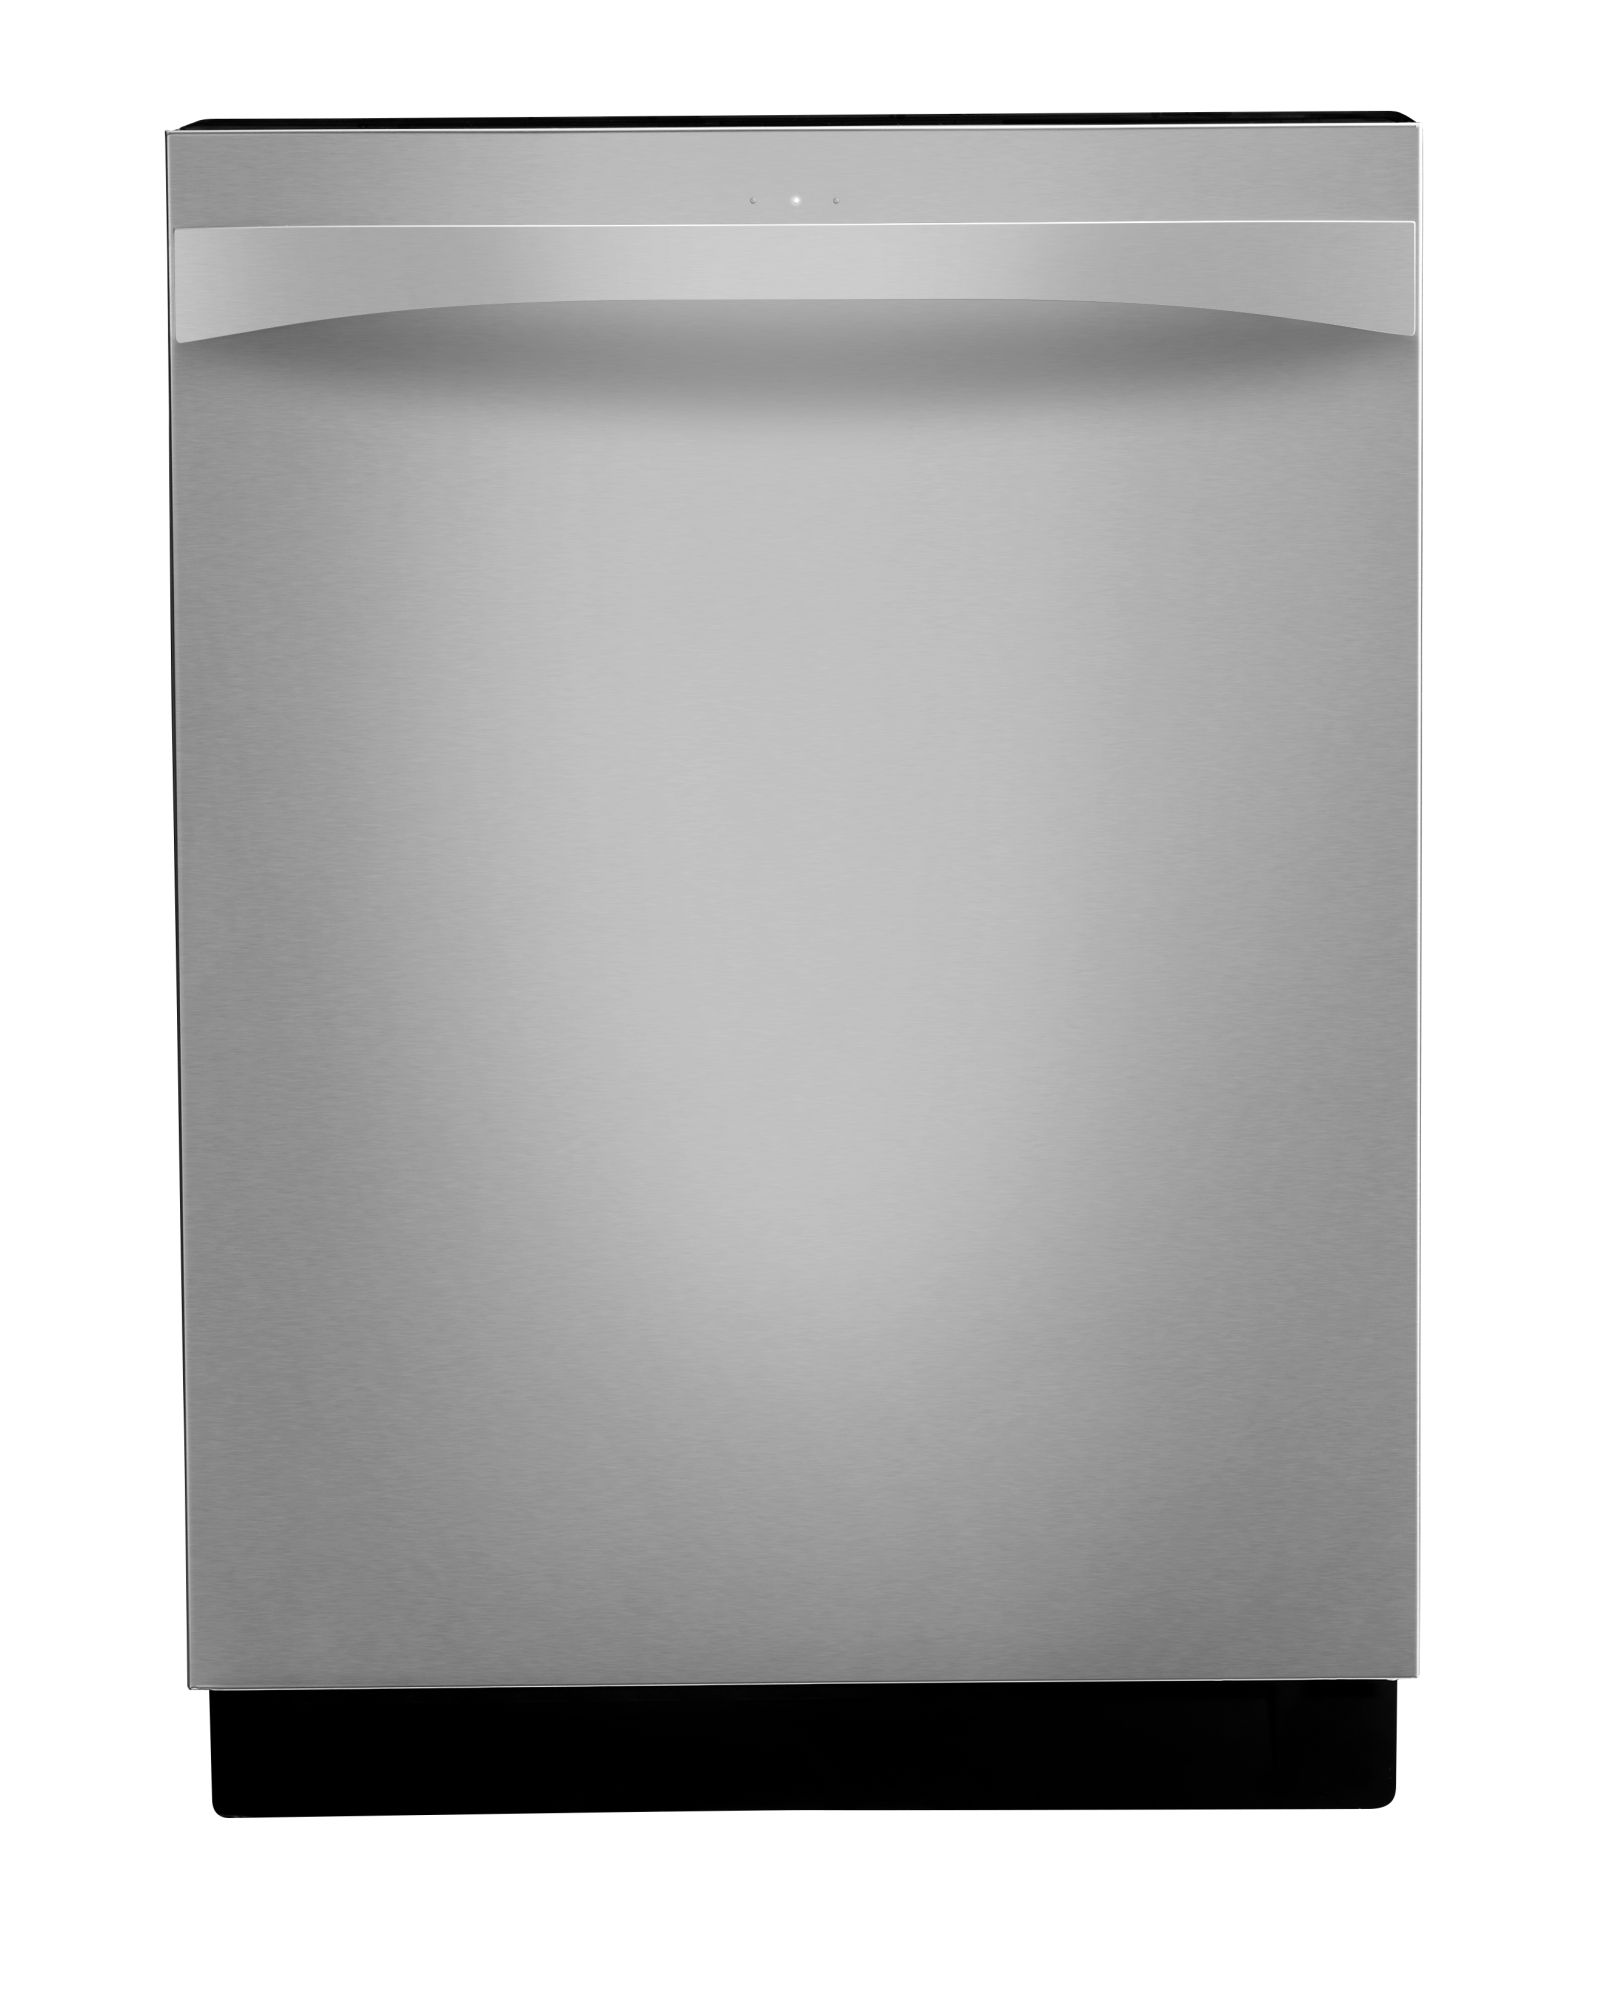 Kenmore Elite 14673 Smart Built In Dishwasher With Third Rack And